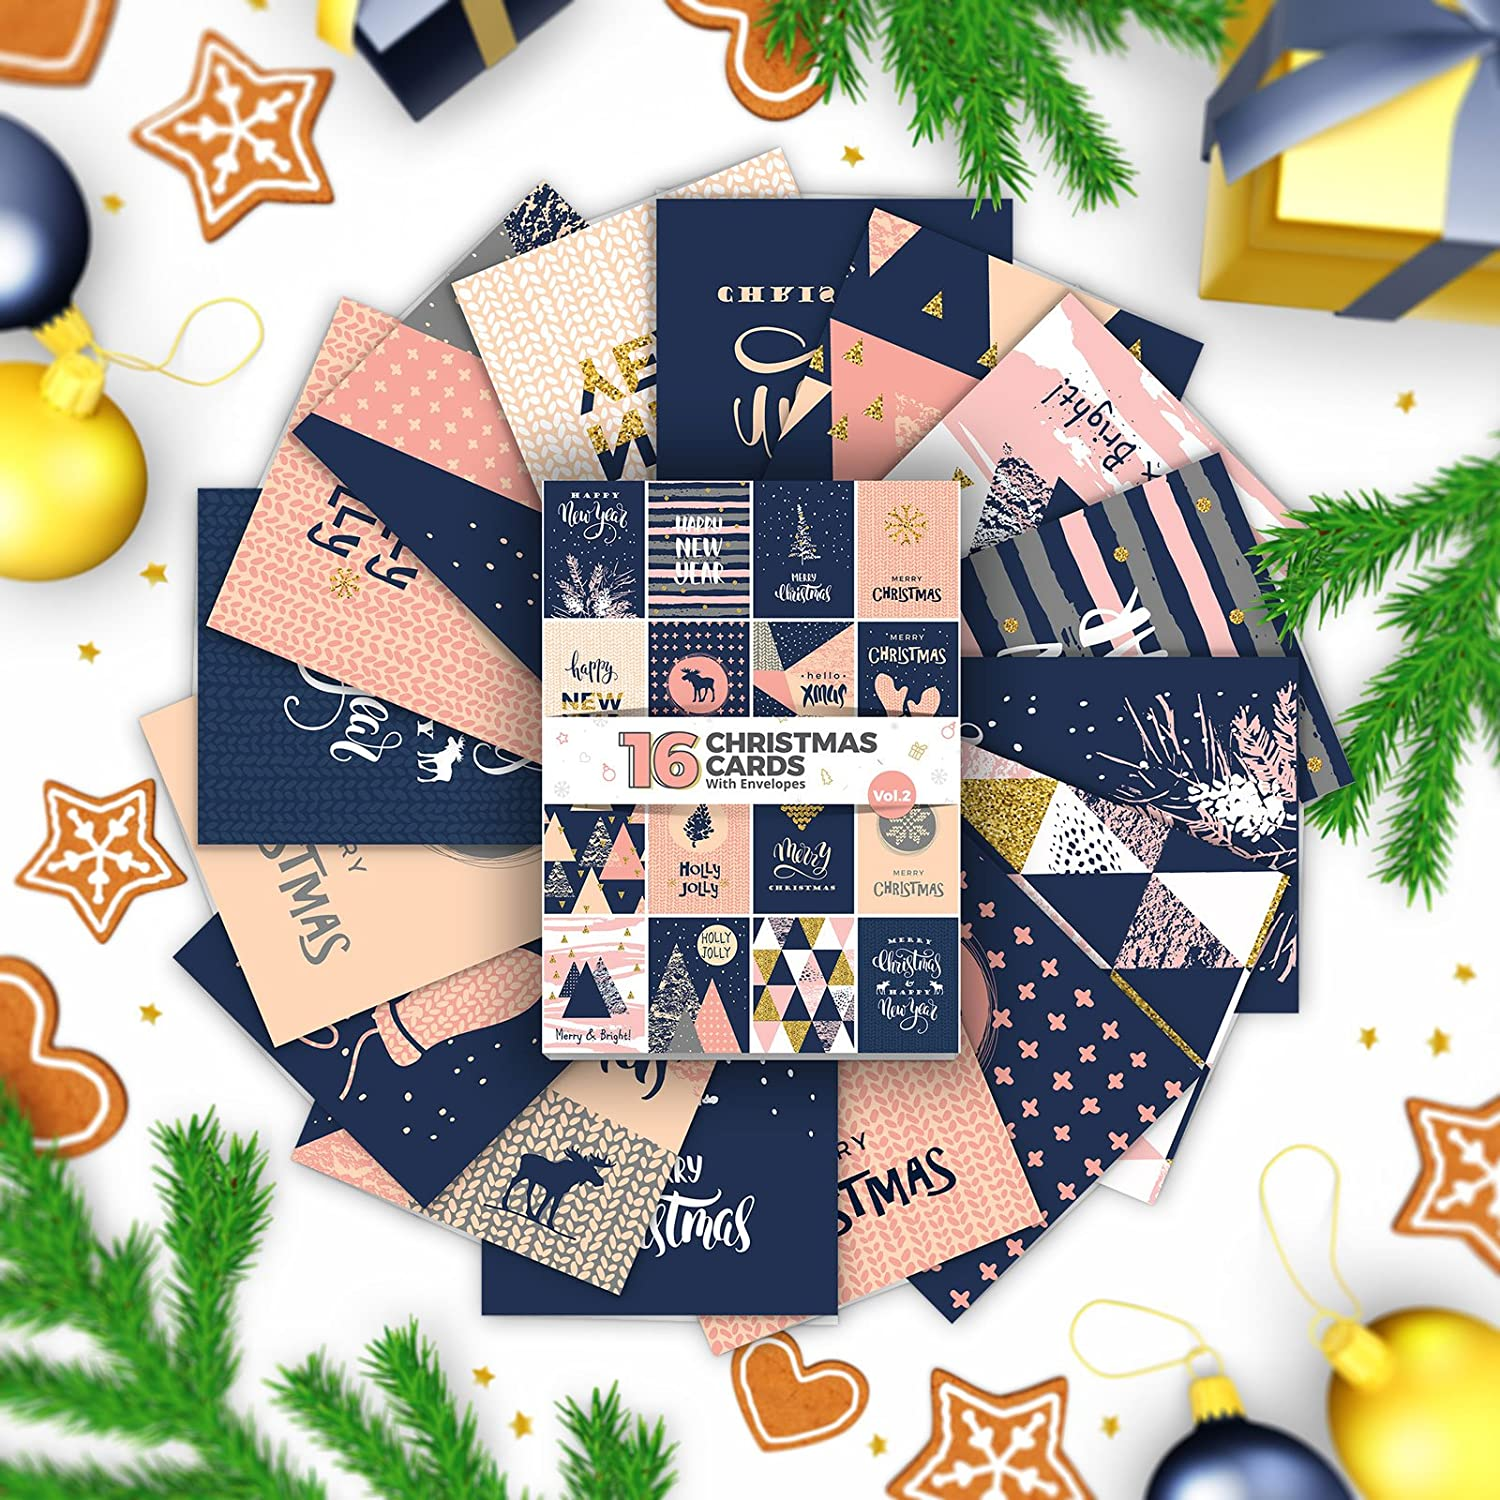 16 X Christmas & Happy New Year Cards By Joy